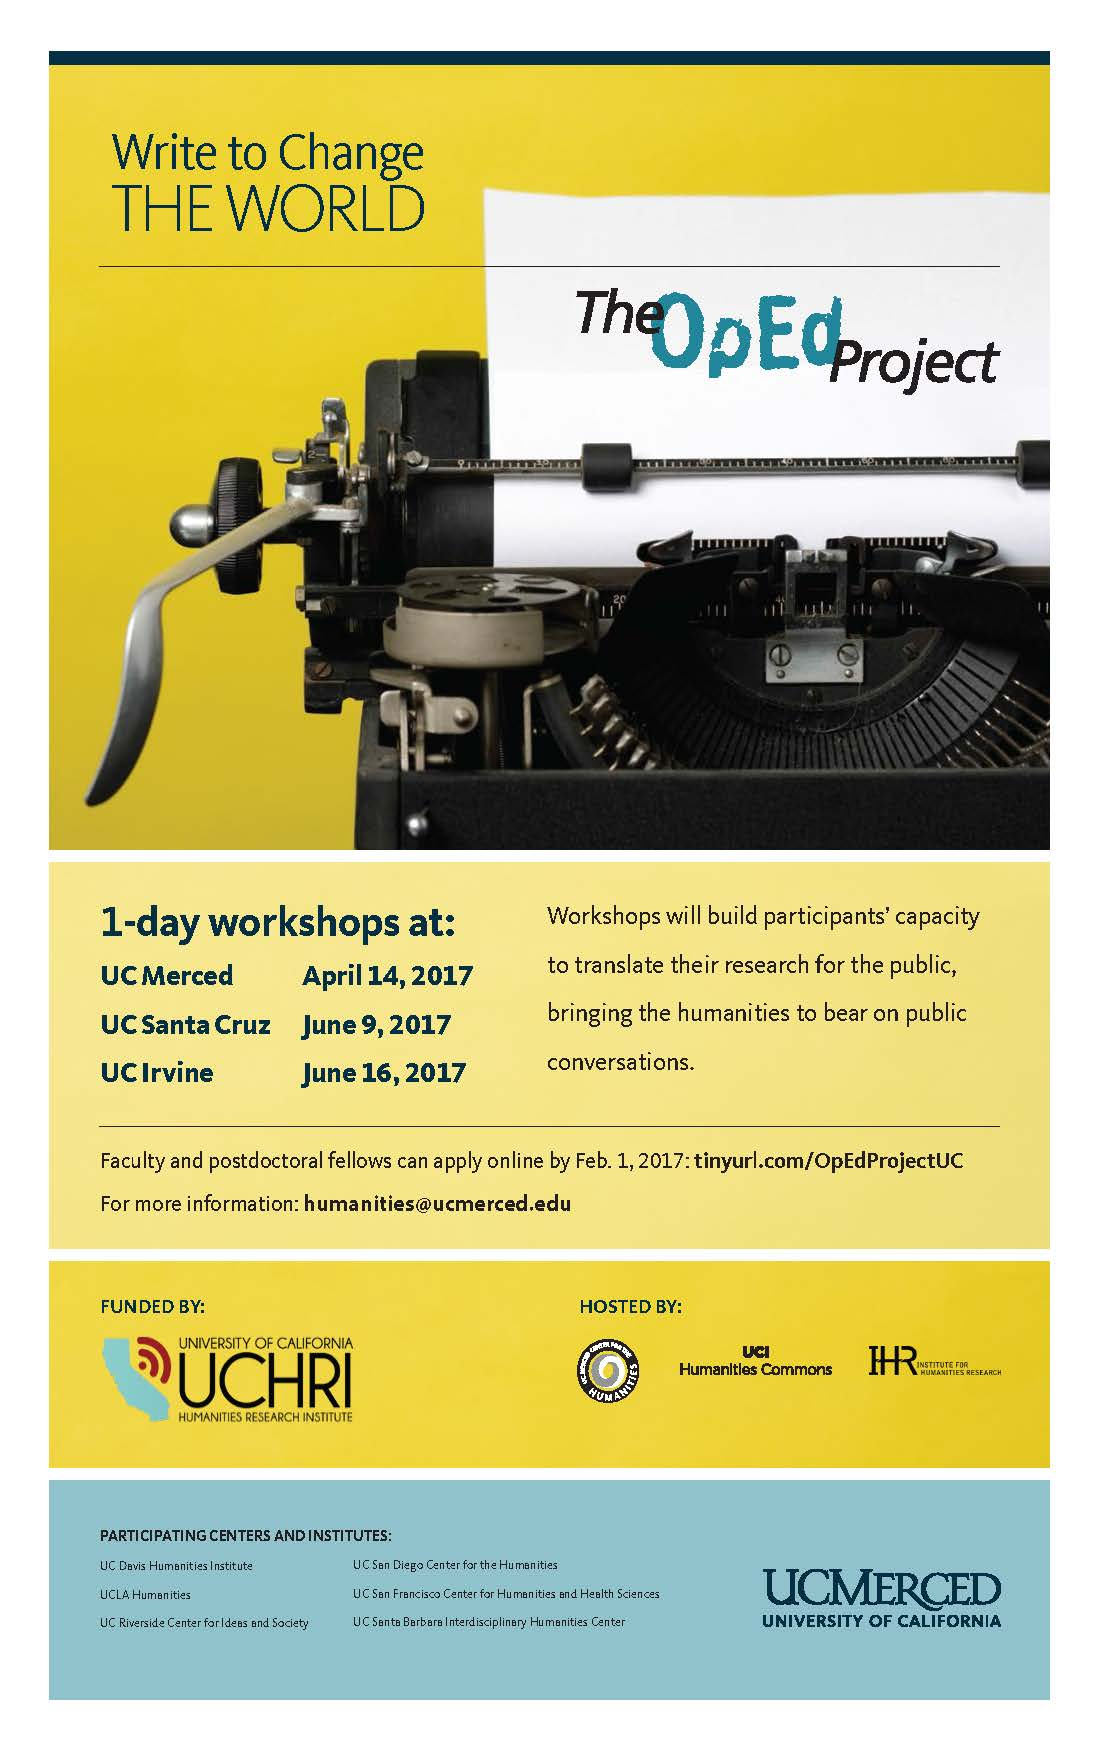 The OpEd Project 2017 workshop poster